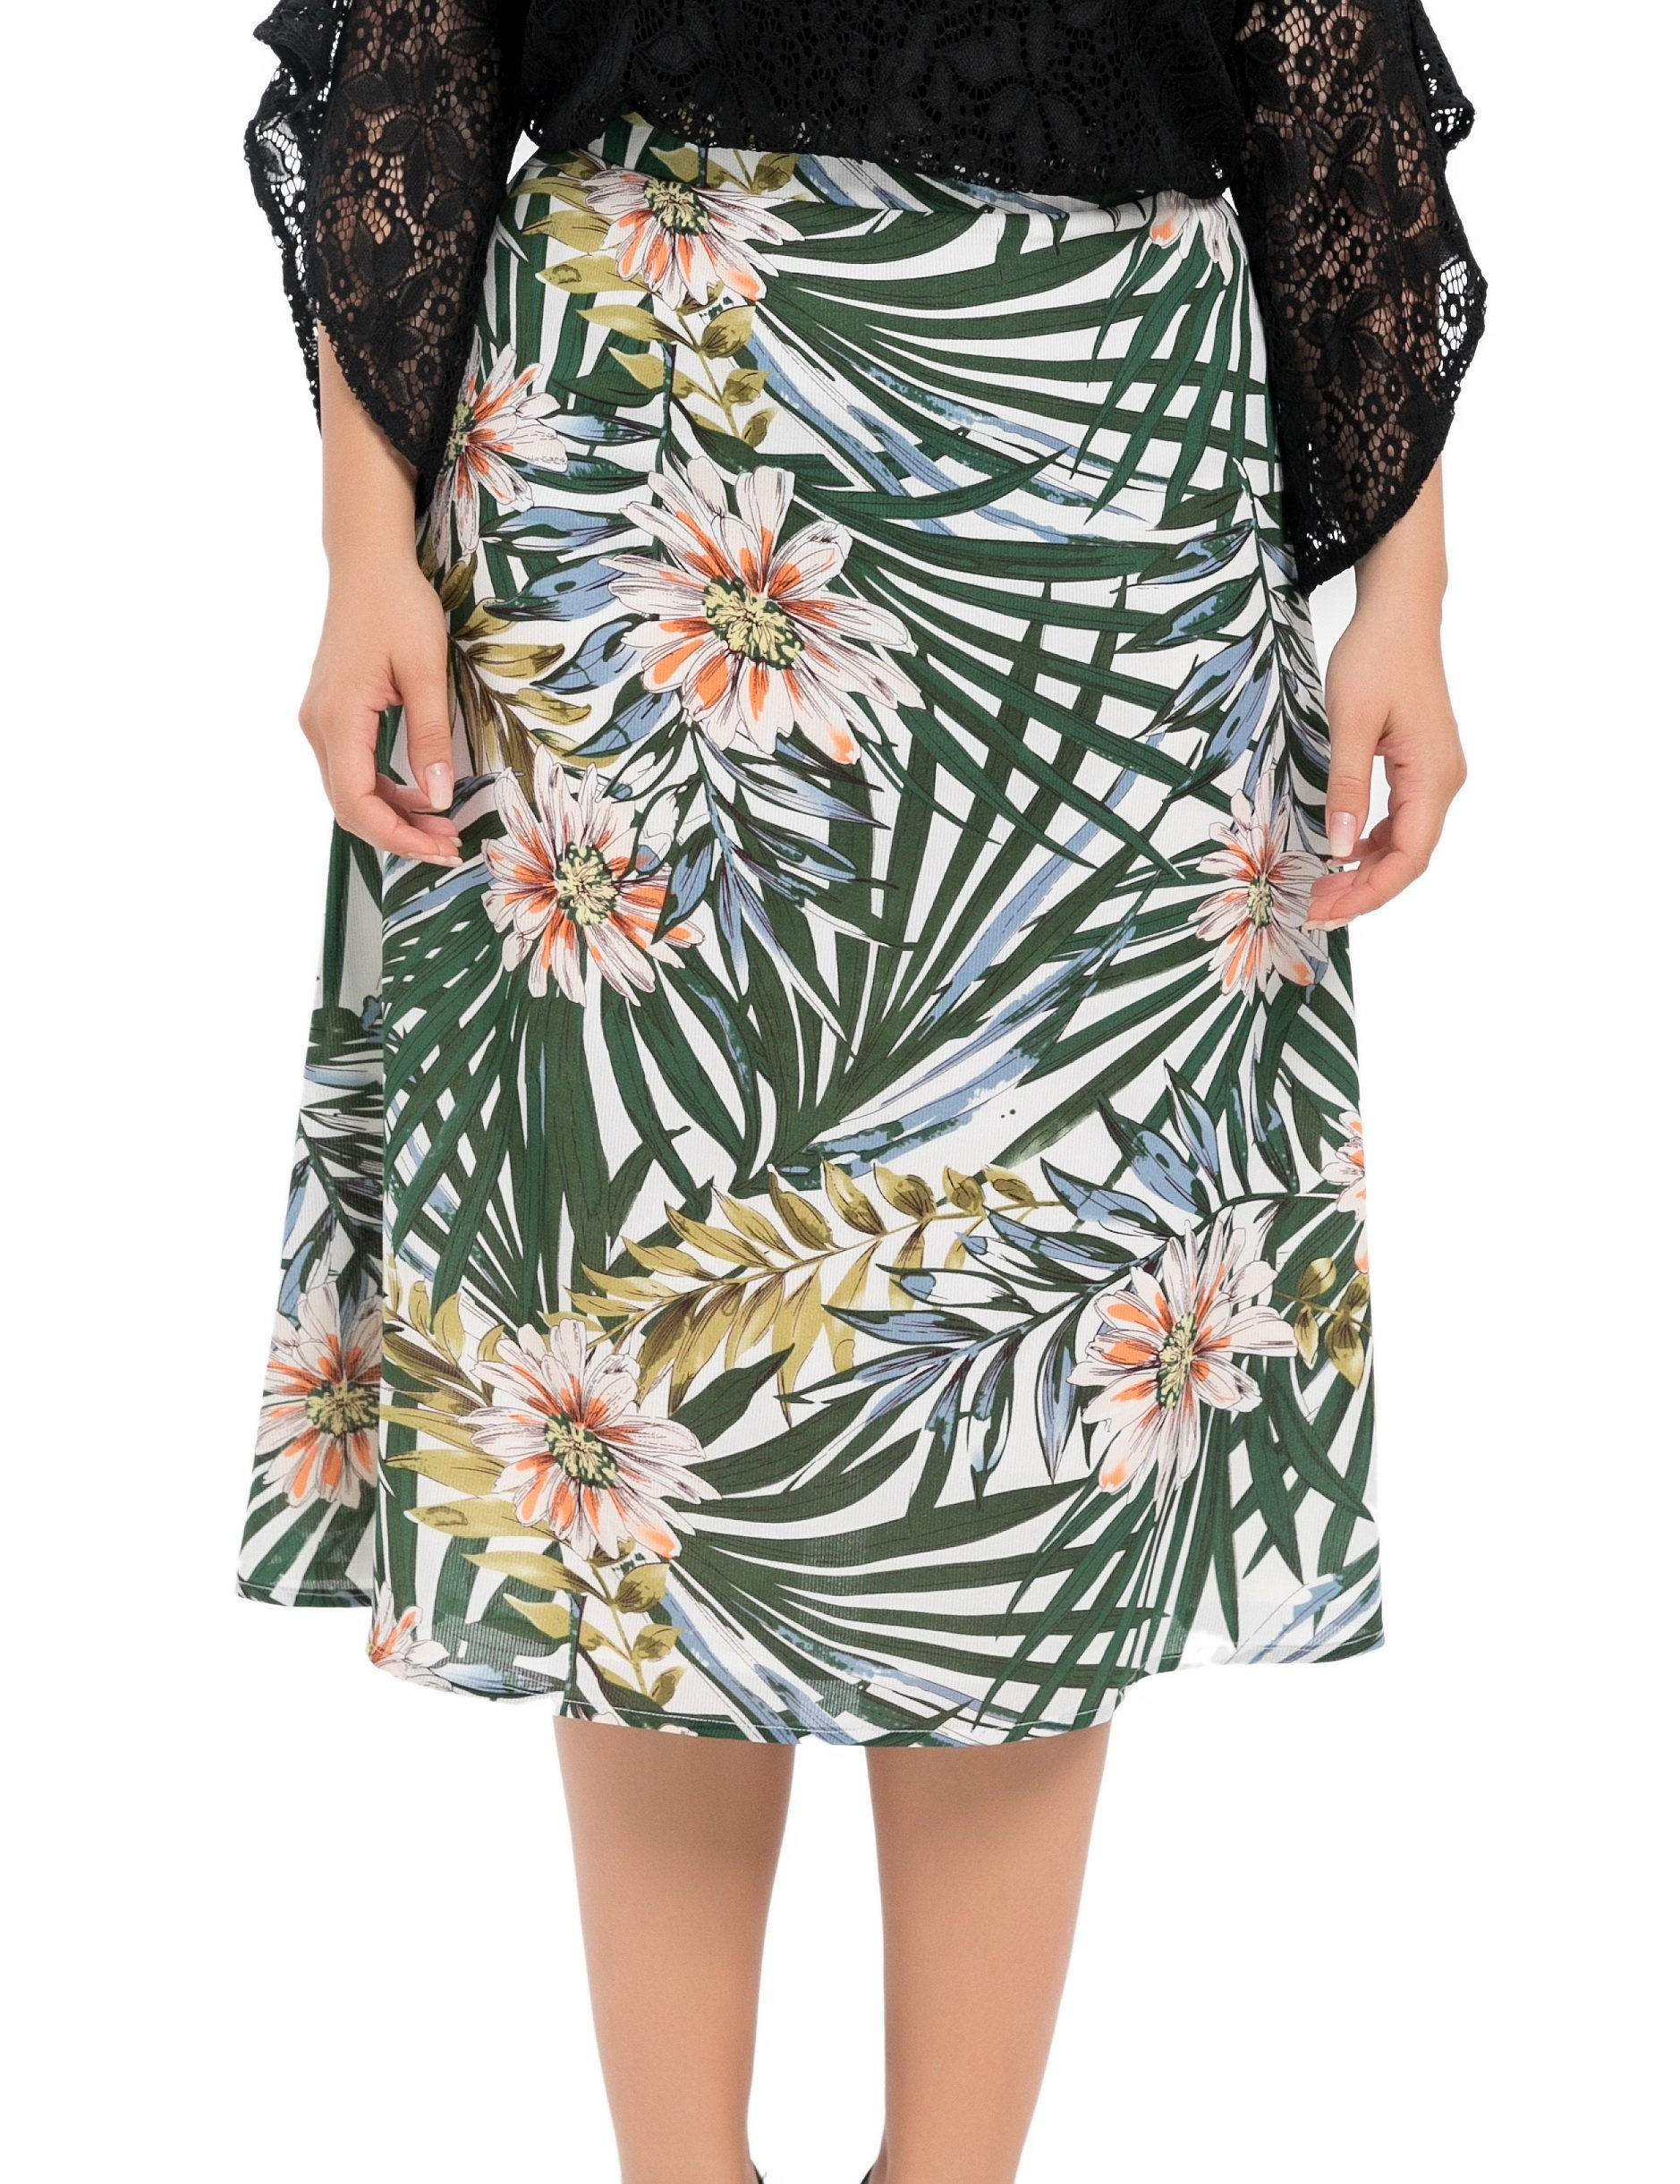 Chicwe Women's Plus Size Lined Floral Printed Long Flared Skirt - Casual and Work Skirt 20